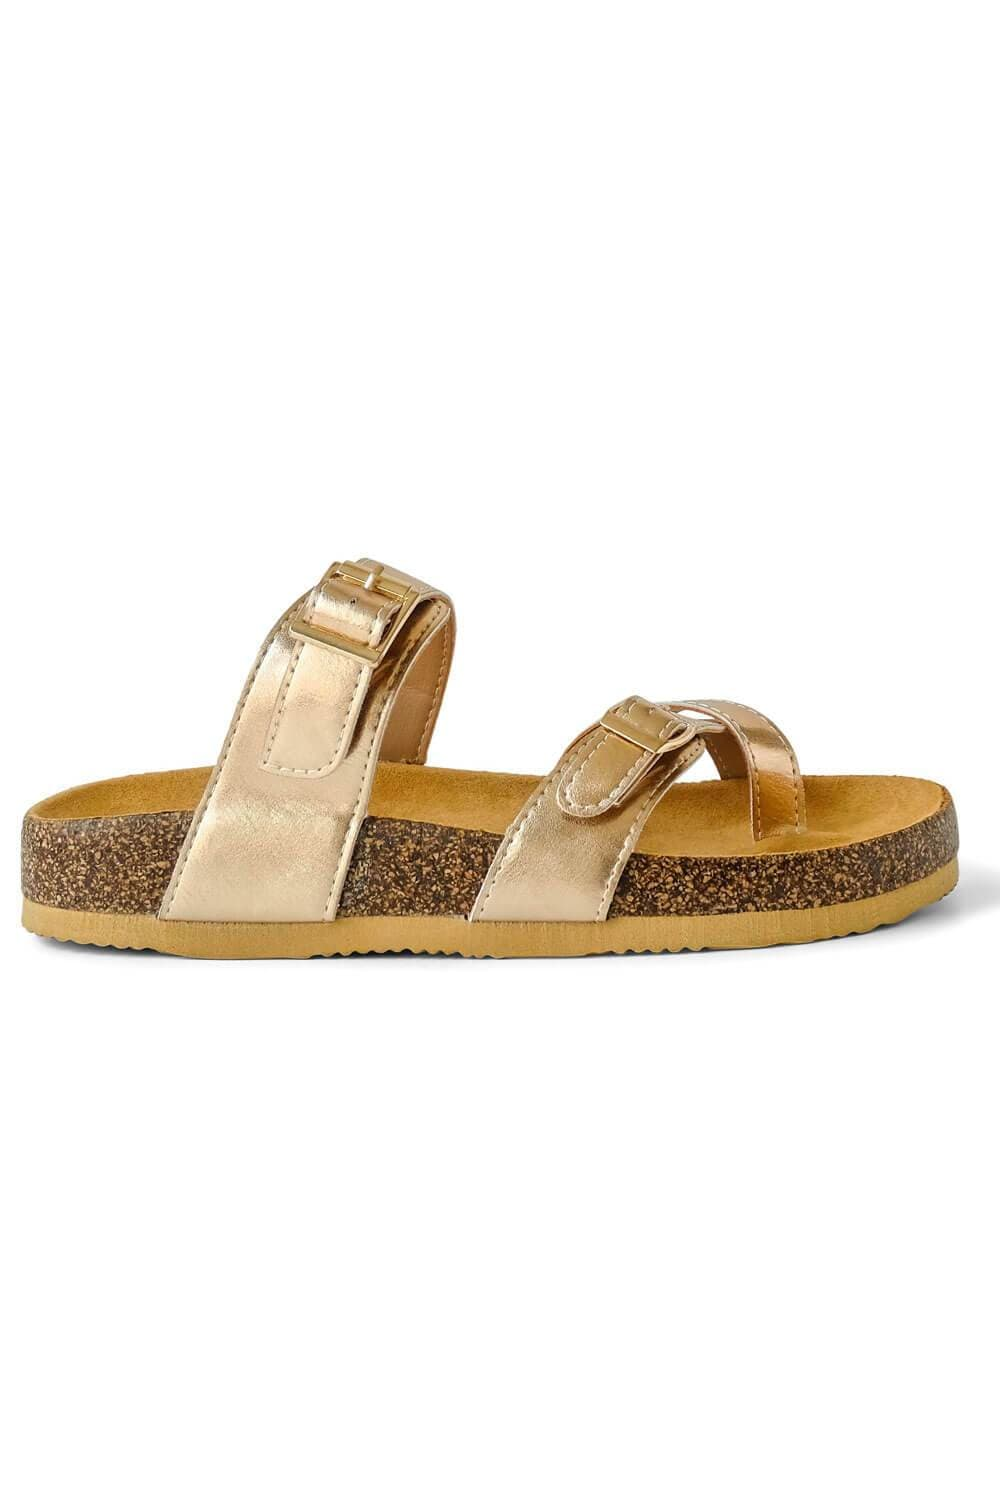 Estella Brik Sandal Rose Gold side - MILK MONEY